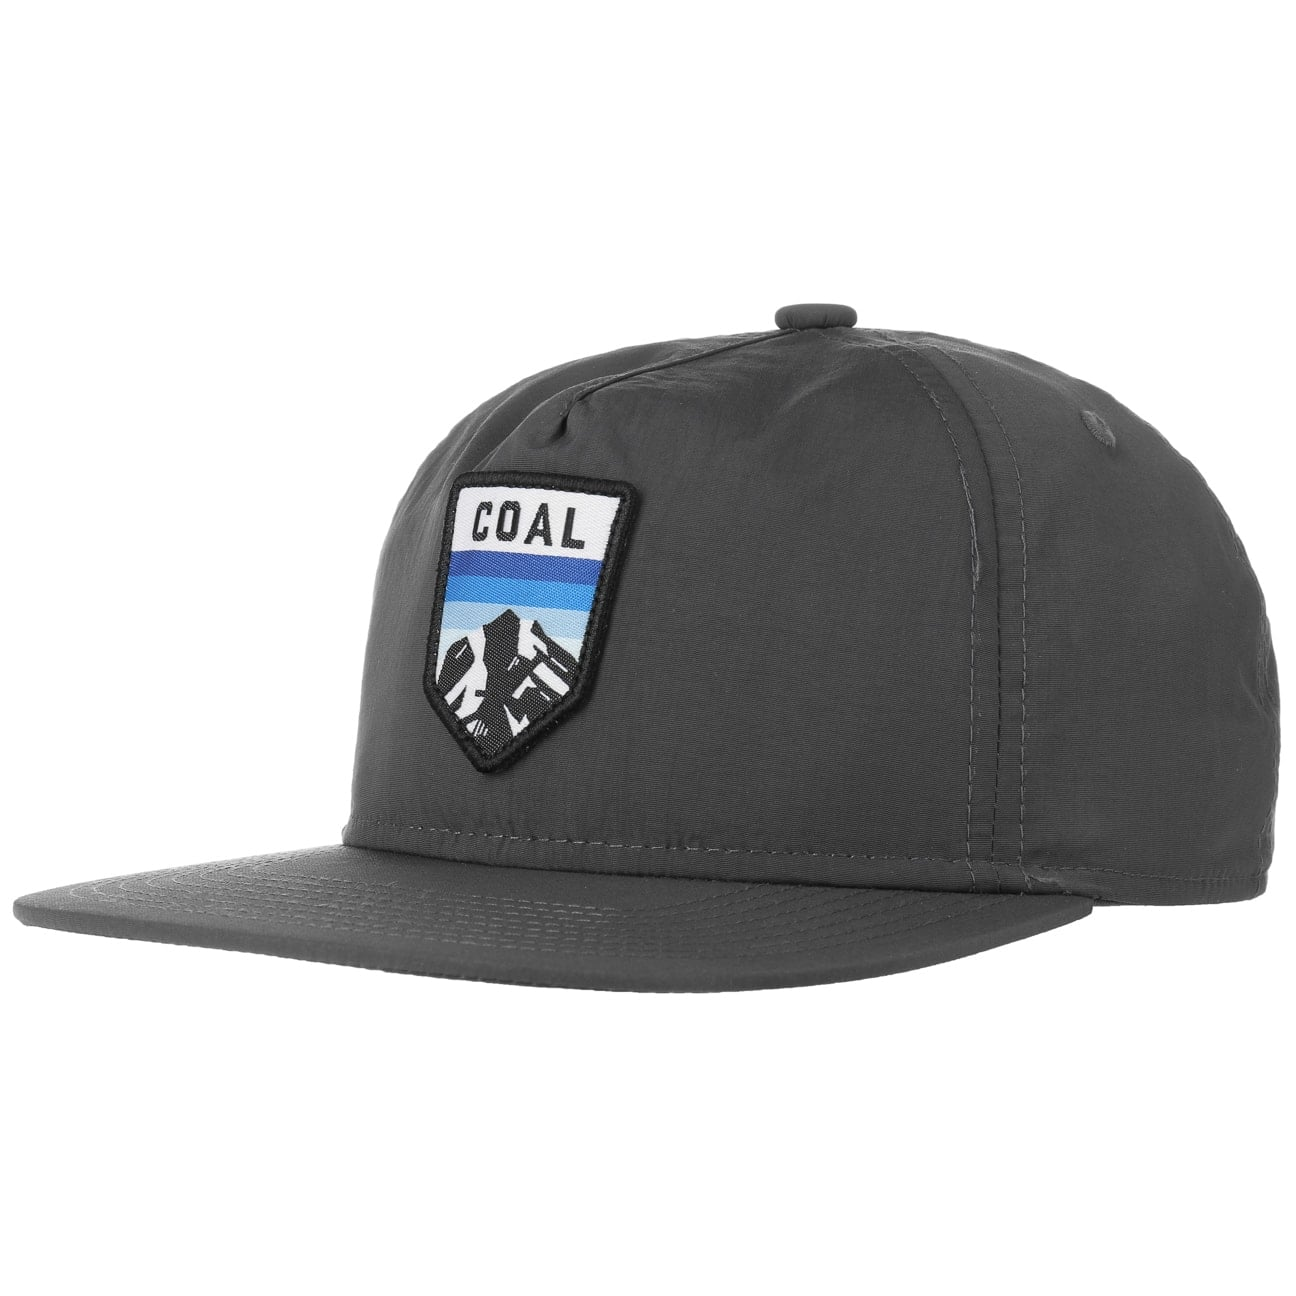 Gorra Performance The Summit by Coal  gorra de baseball